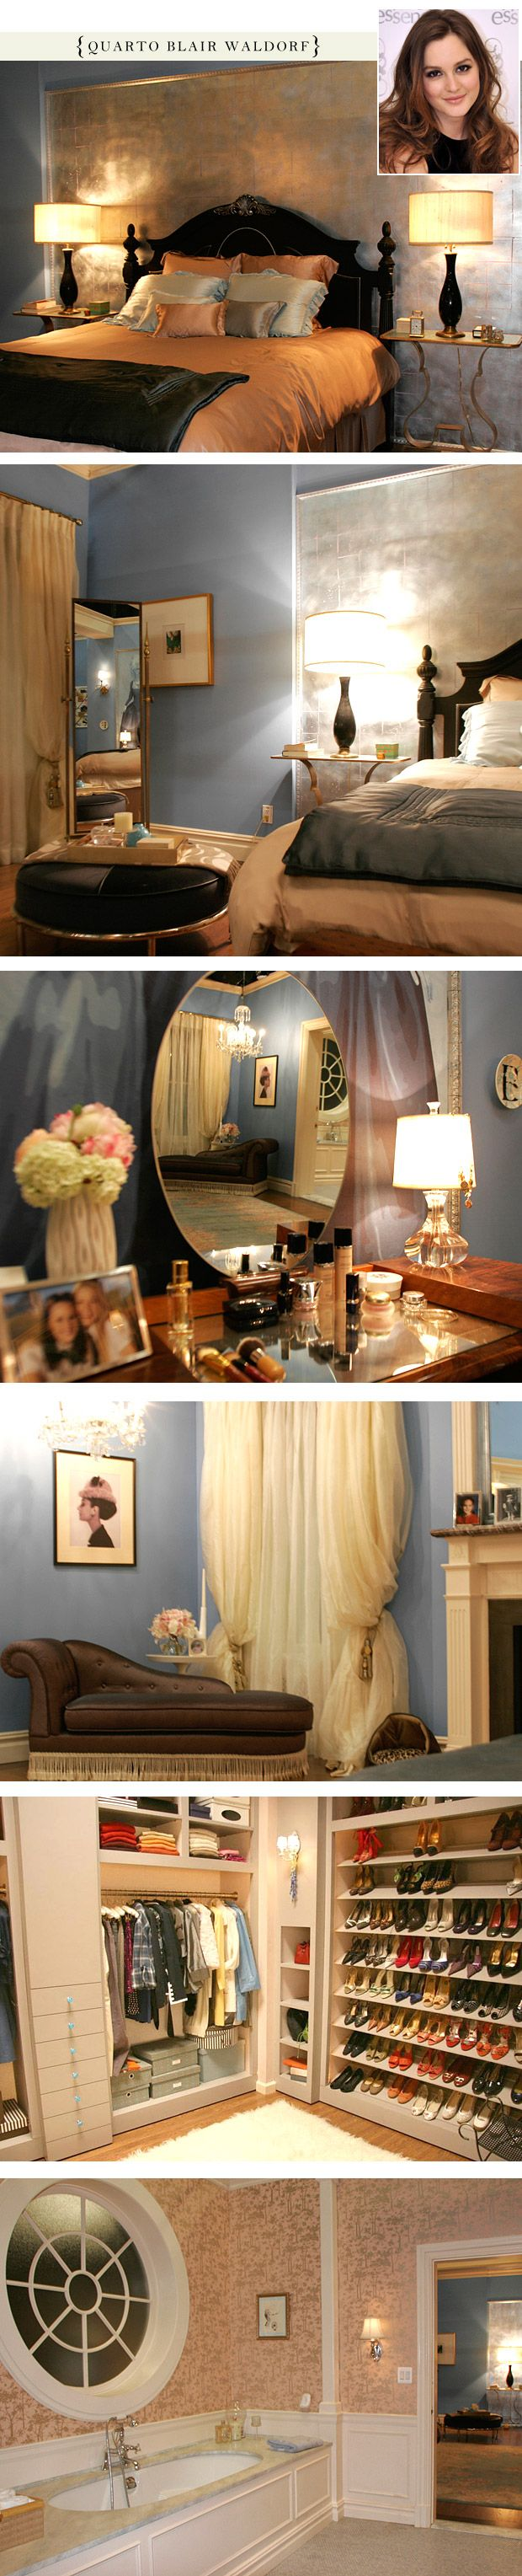 Blair Waldorf's bedroom from Gossip Girl. A girl could dream